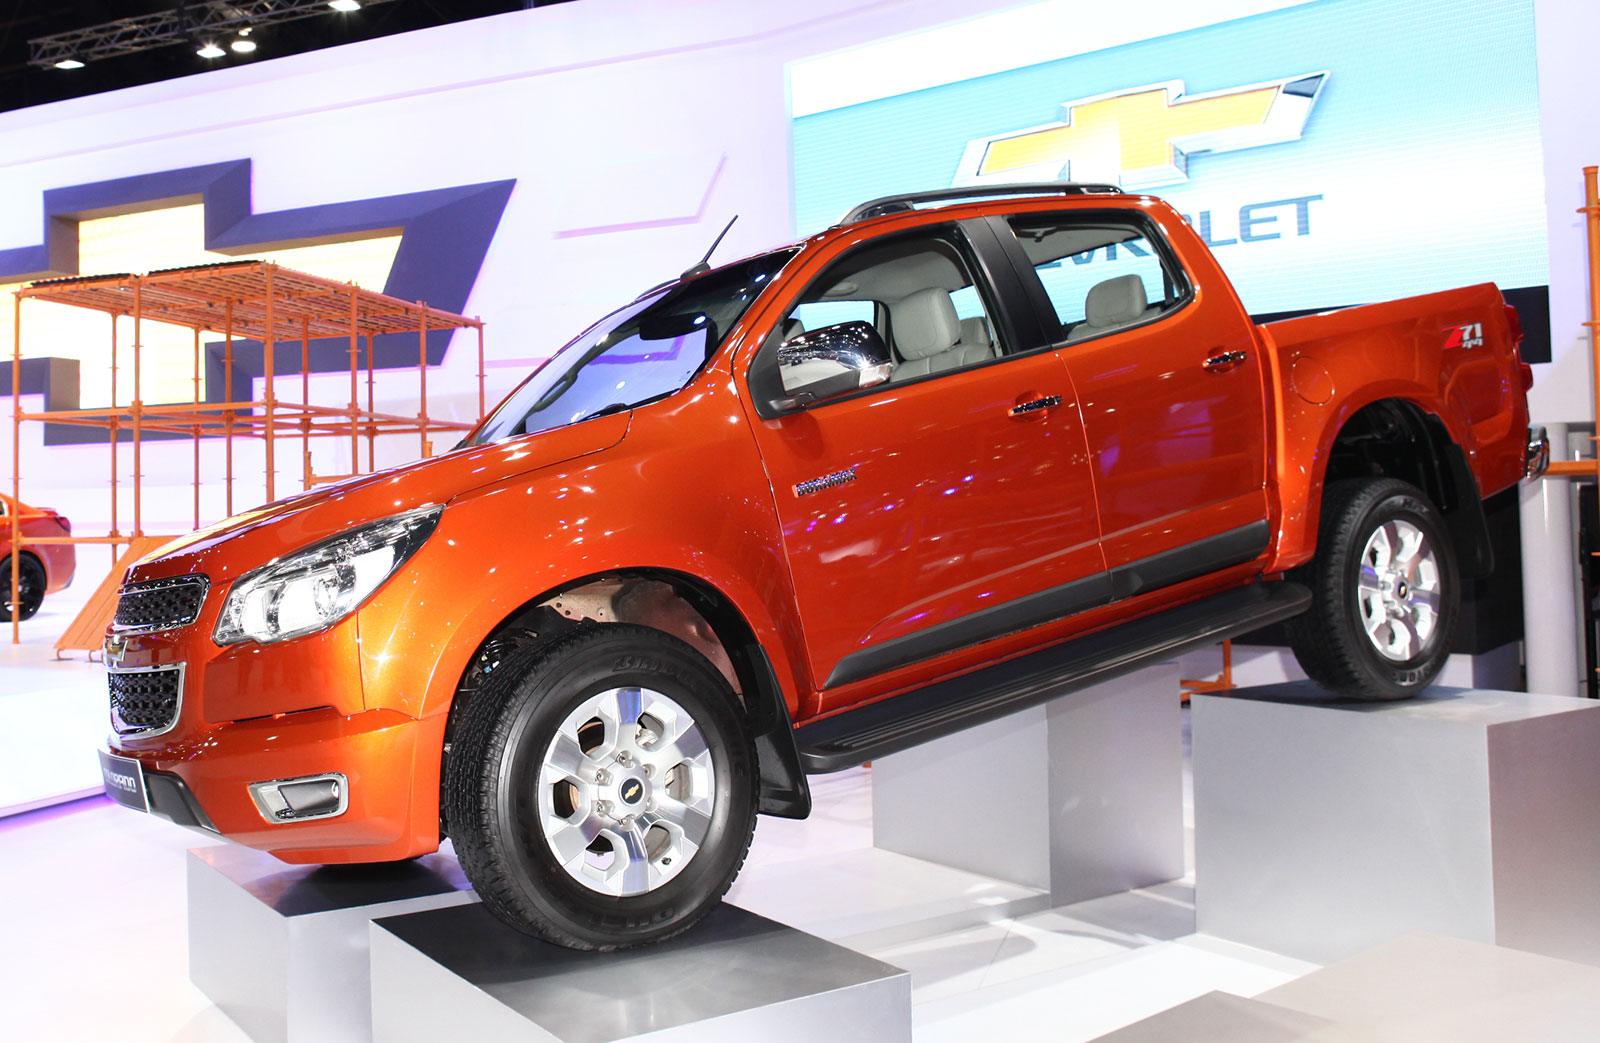 2014 Chevy Colorado Thailand